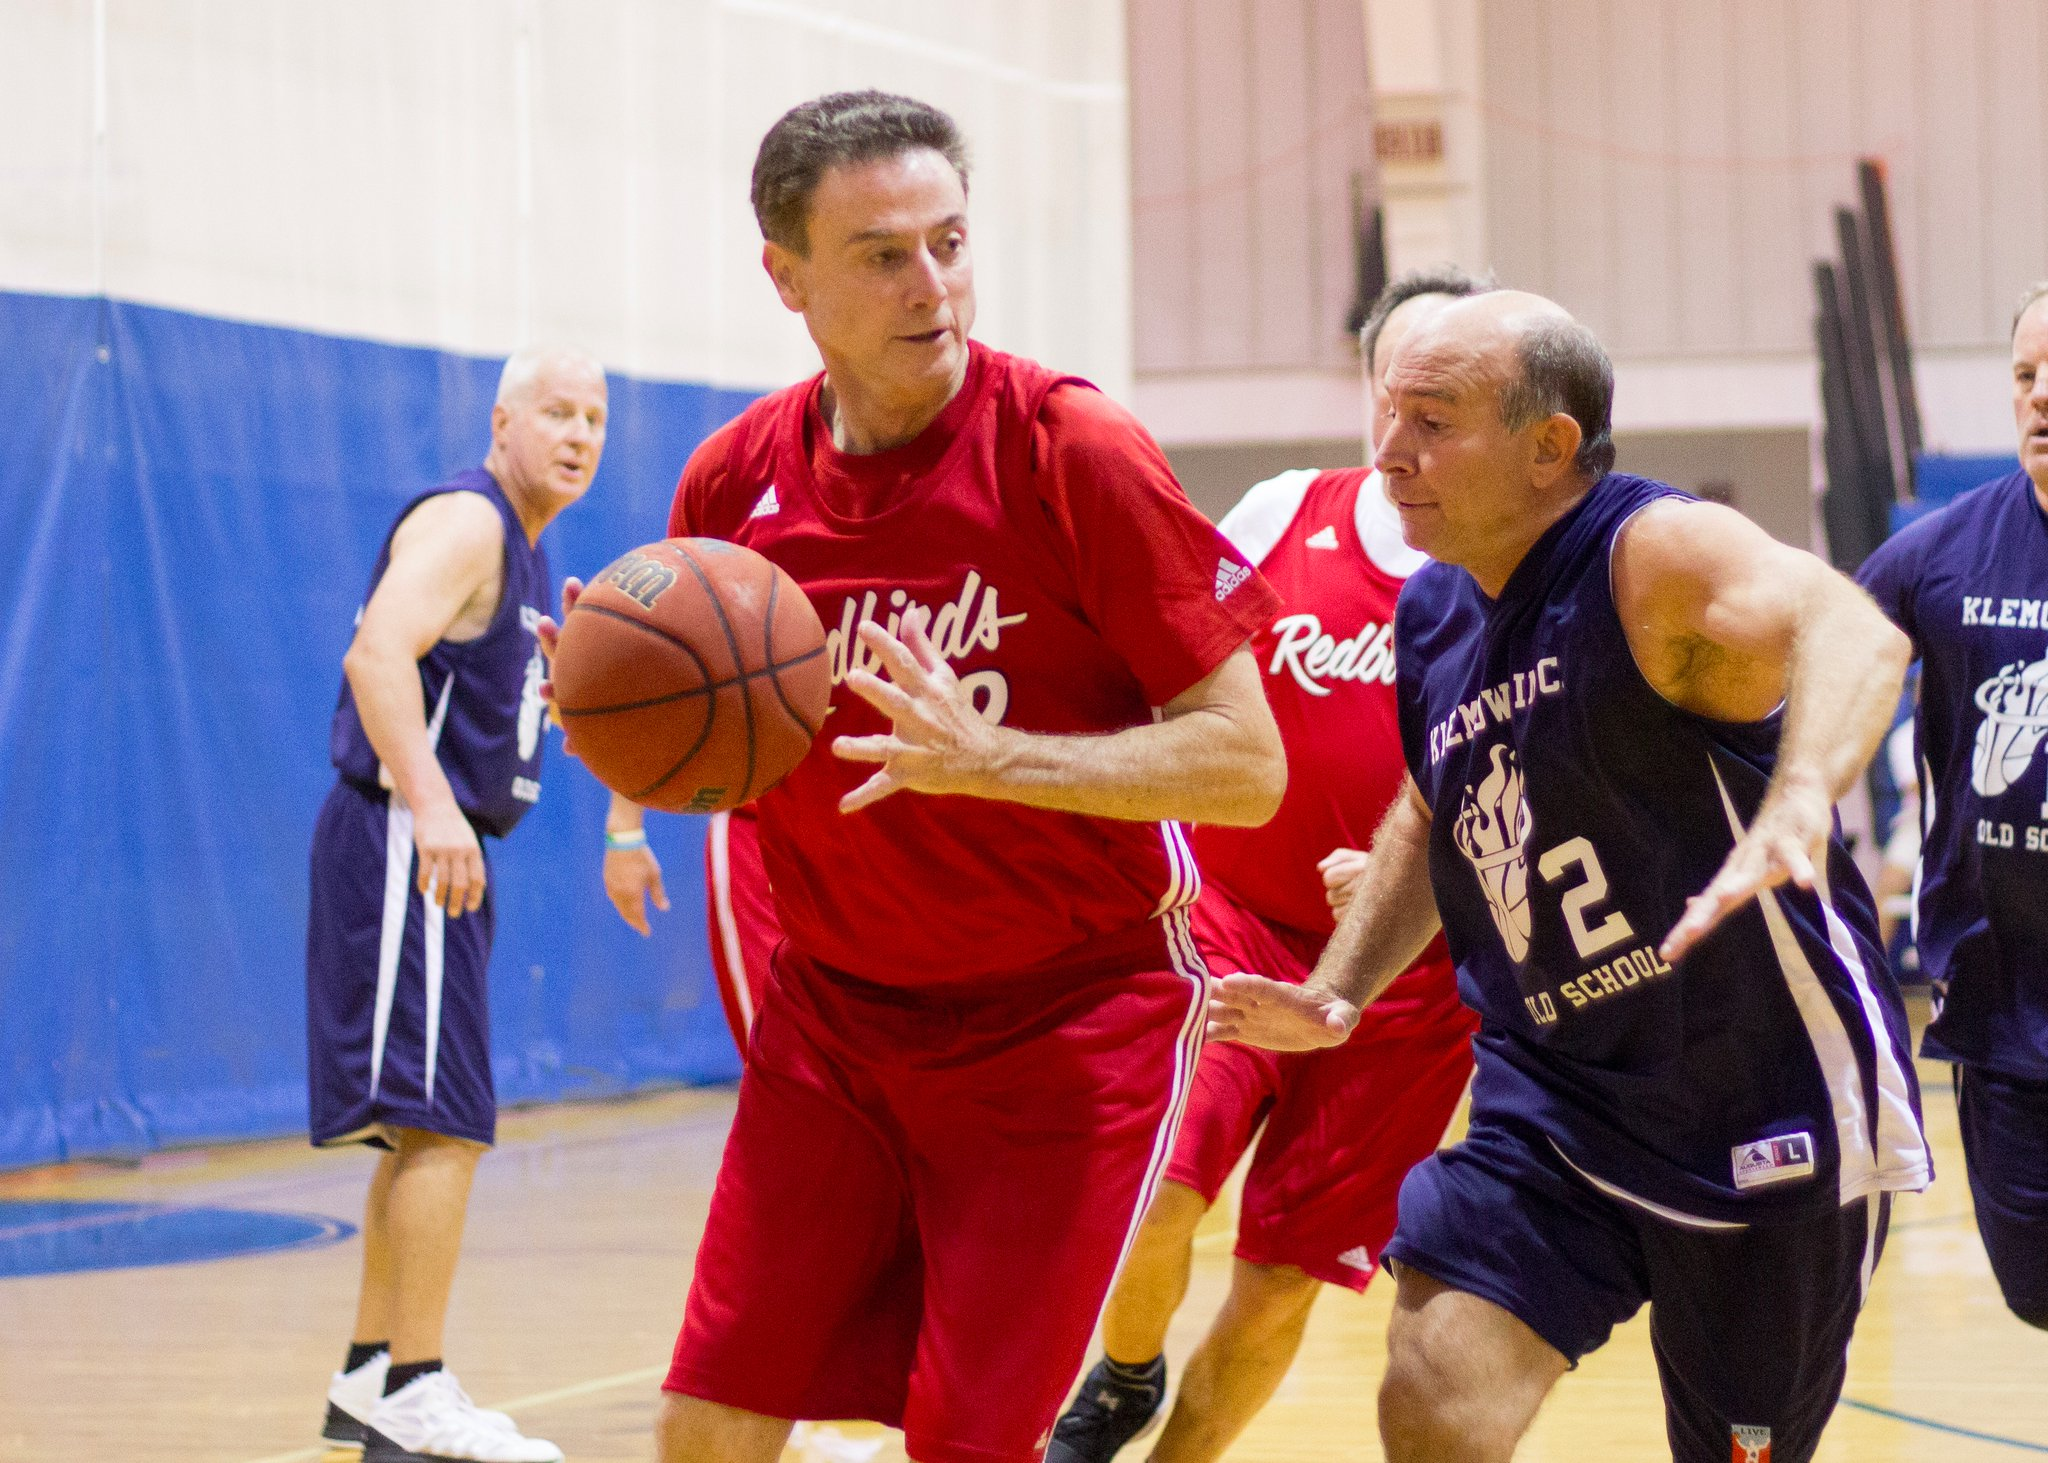 Rick Pitino guarded by Danny DeVito's doppleganger in the Masters Basketball Tournament in Coral Gables, Florida